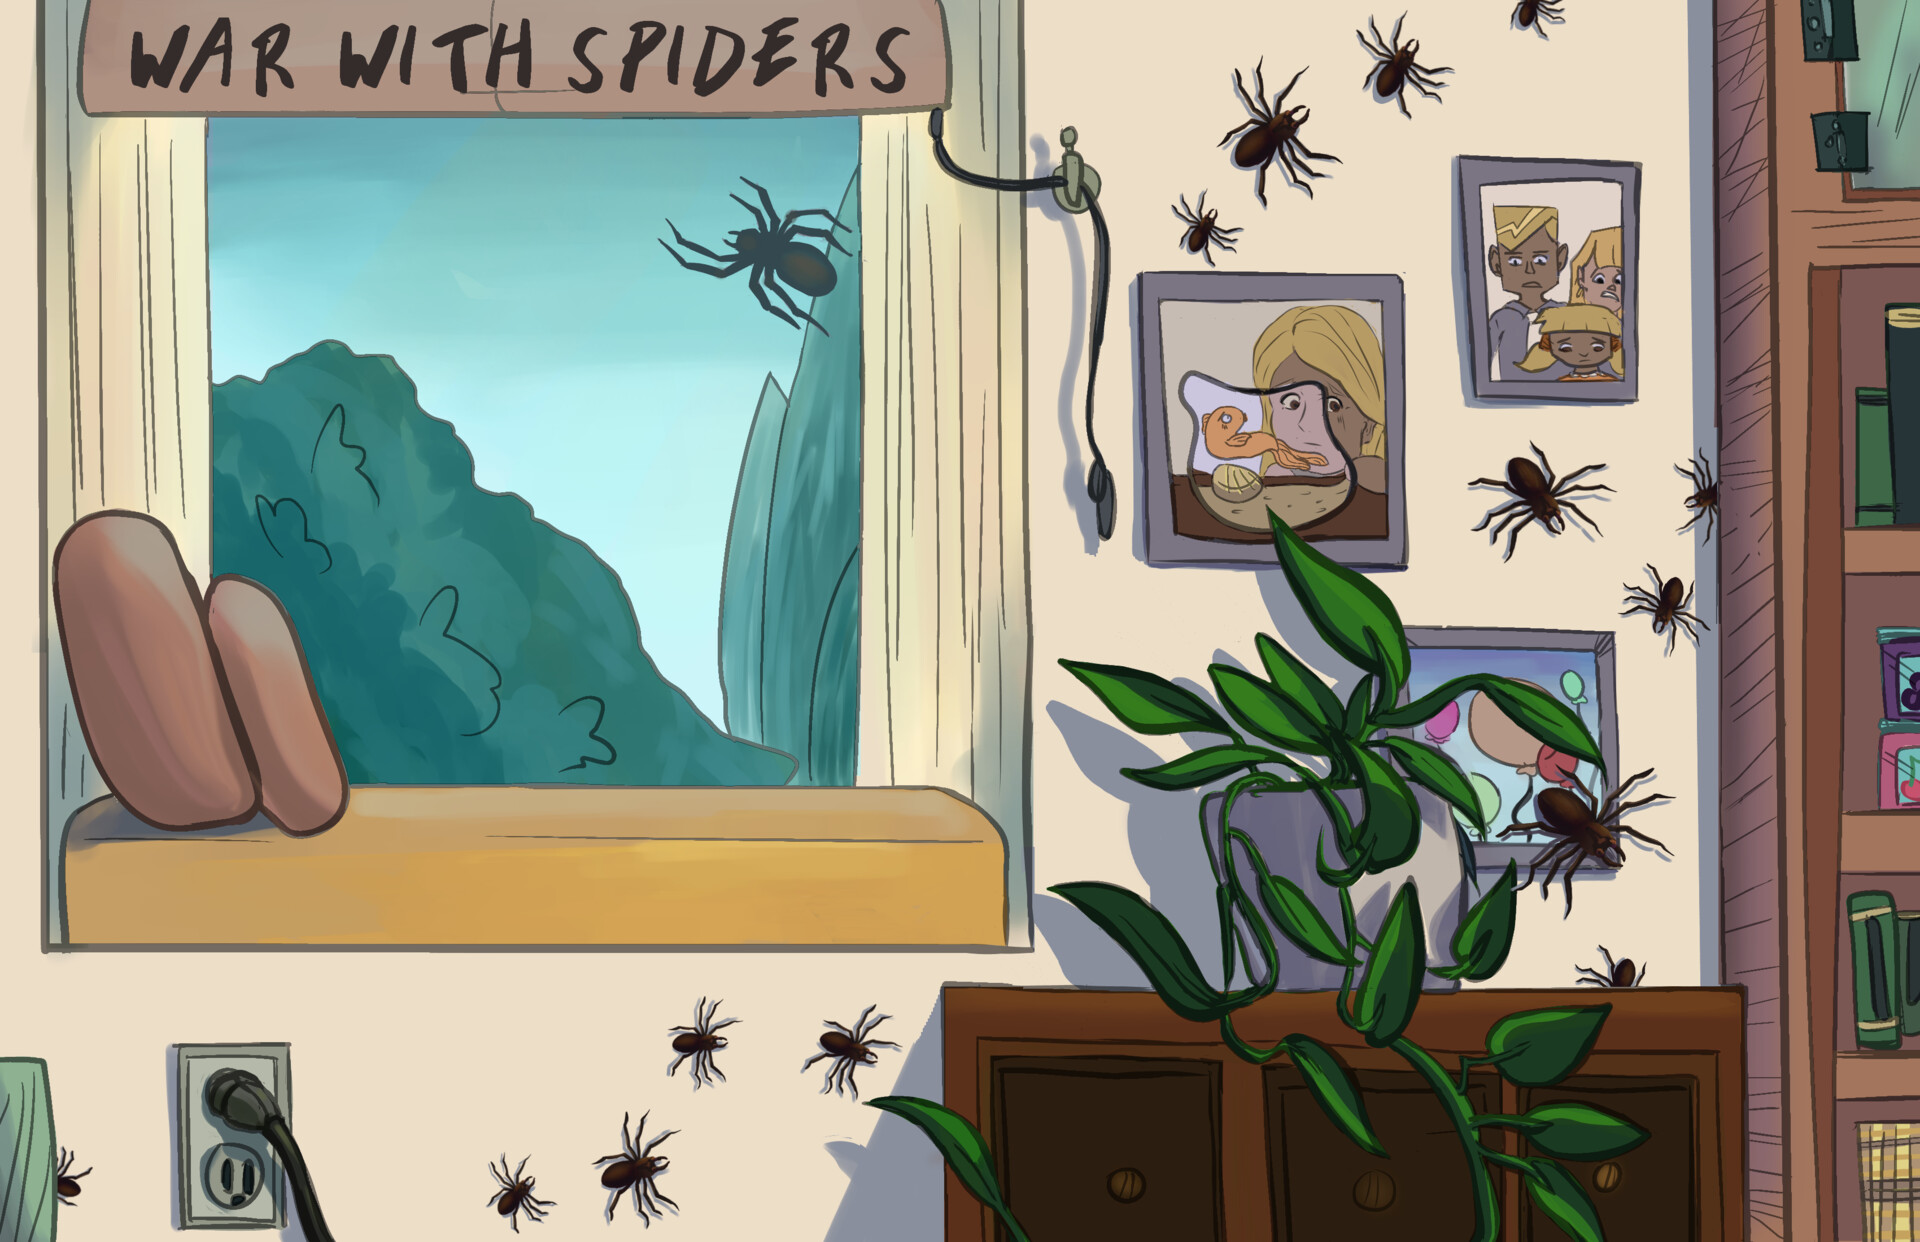 Lillian Chen - Bugology Wallpaper 3 - War with Spiders - illustration